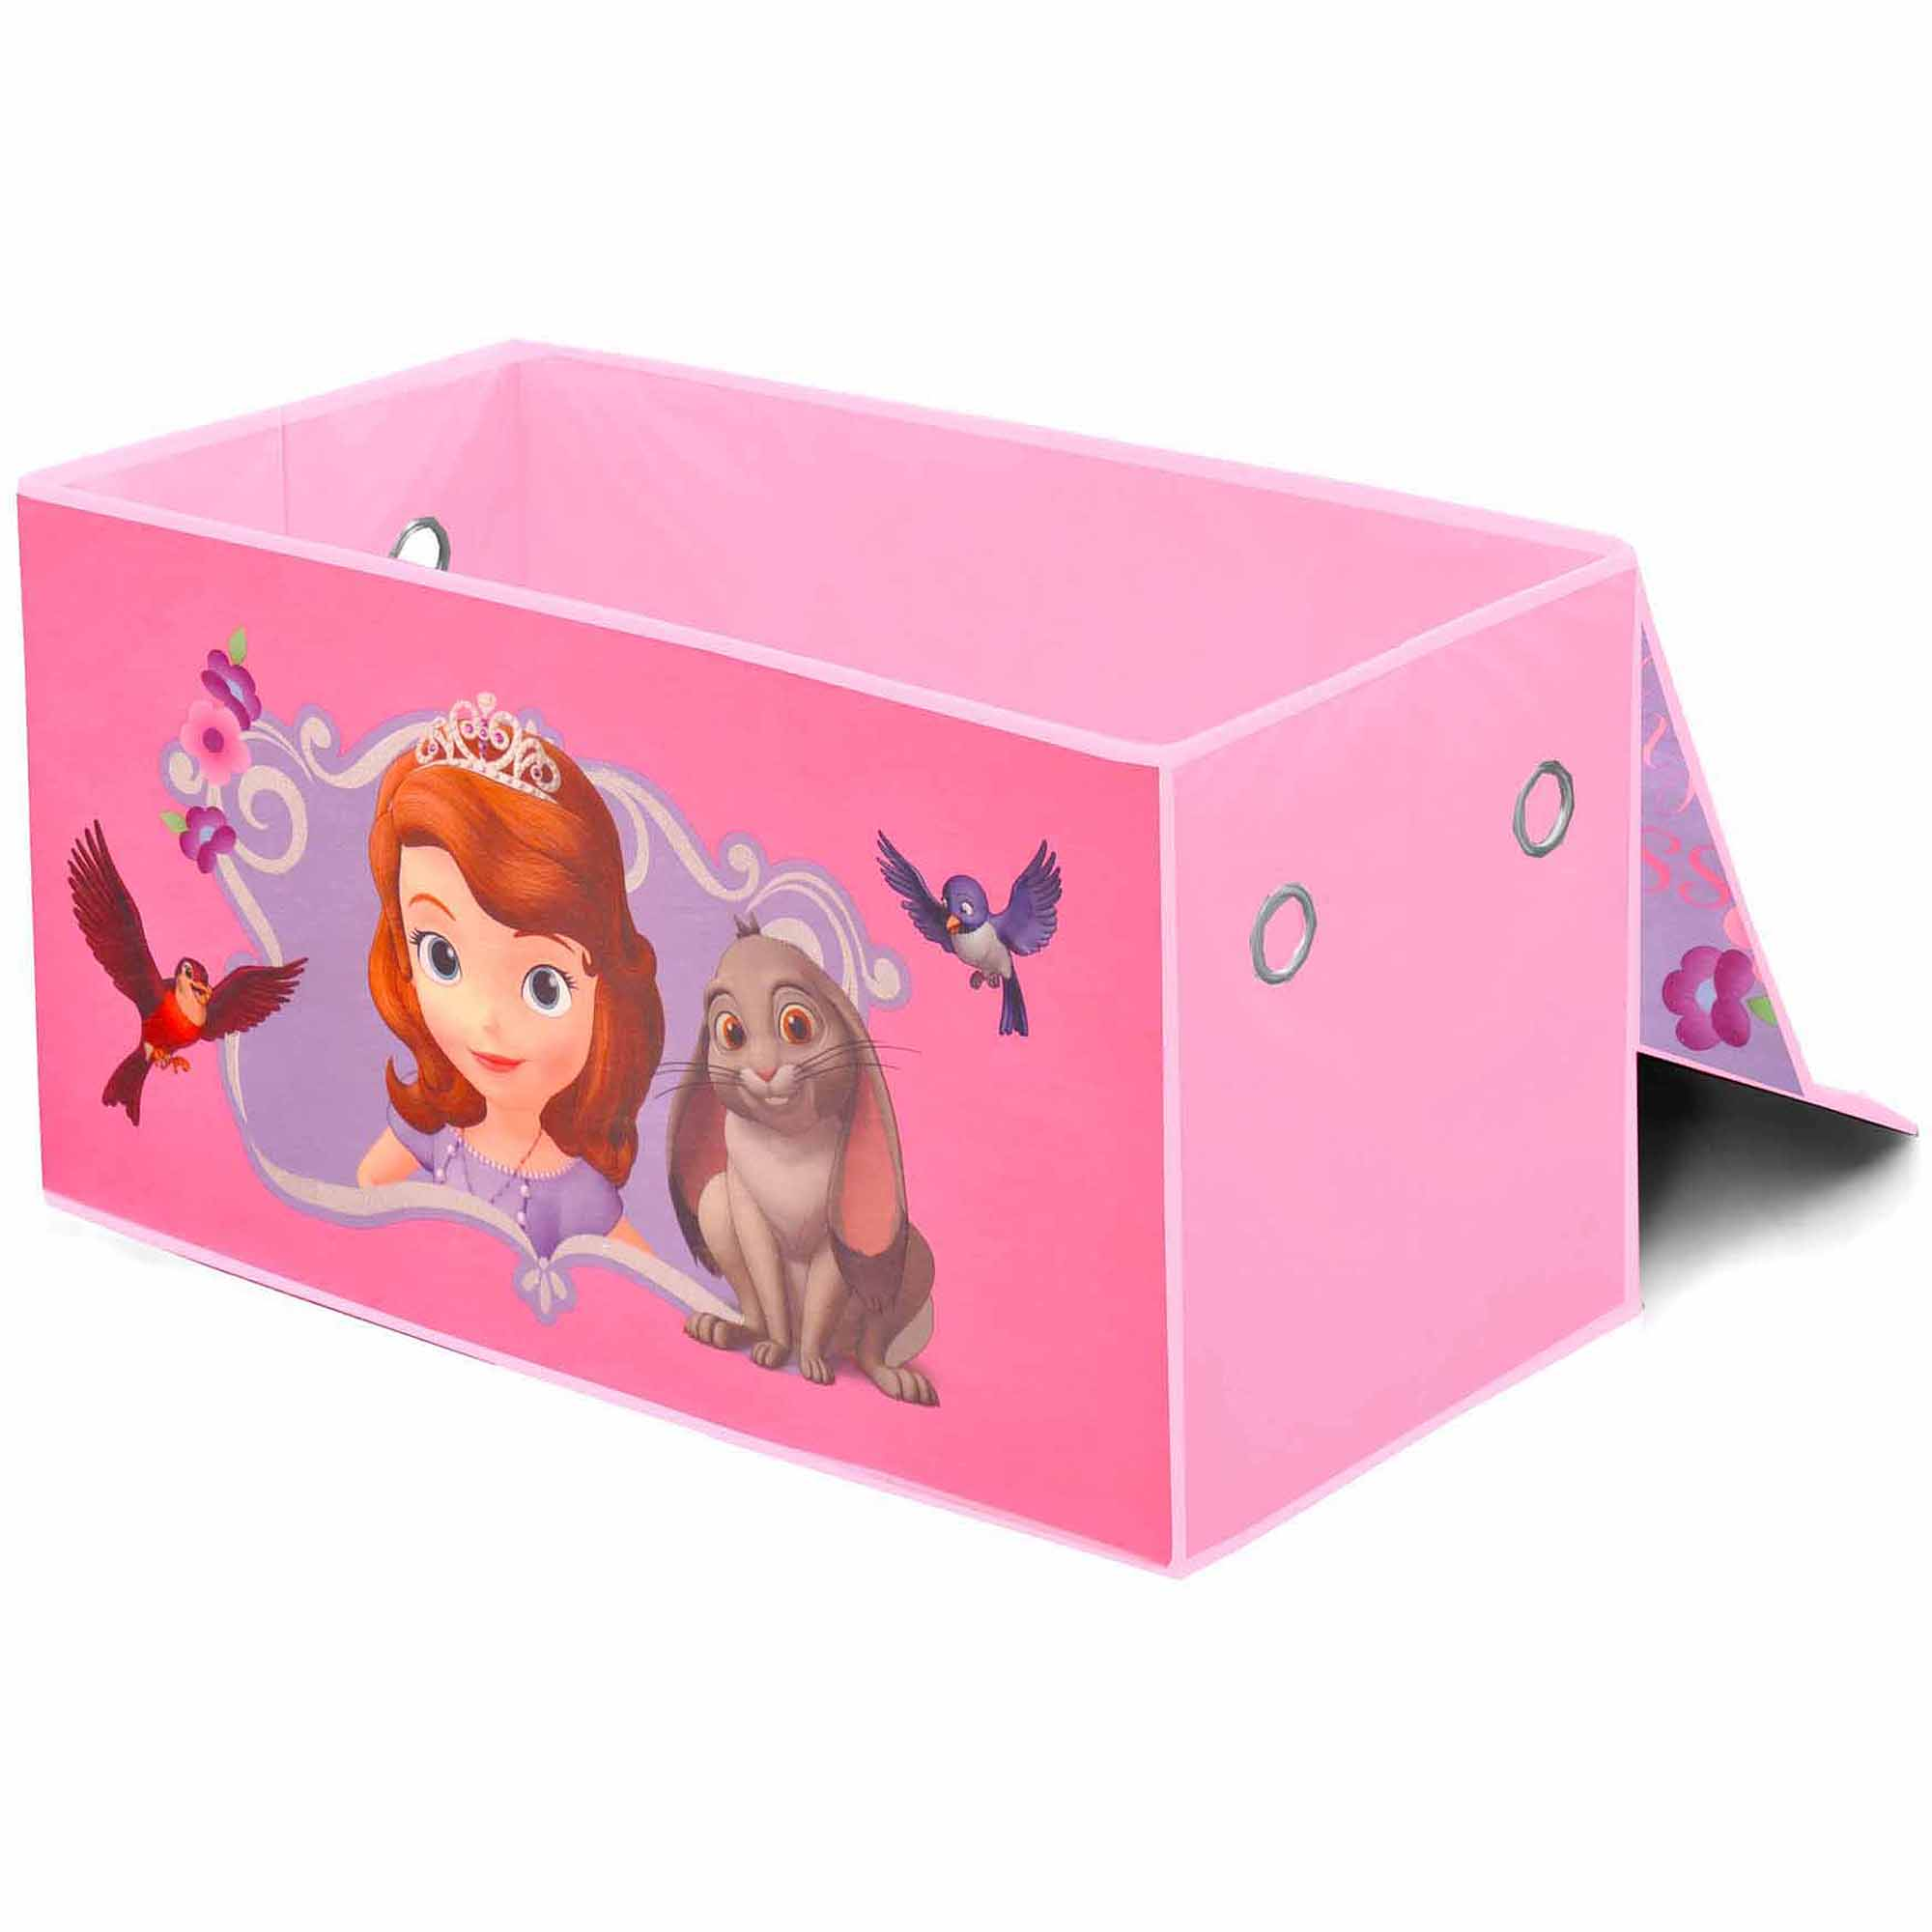 Disney Sofia the First Oversized Soft Collapsible Storage Toy Trunk